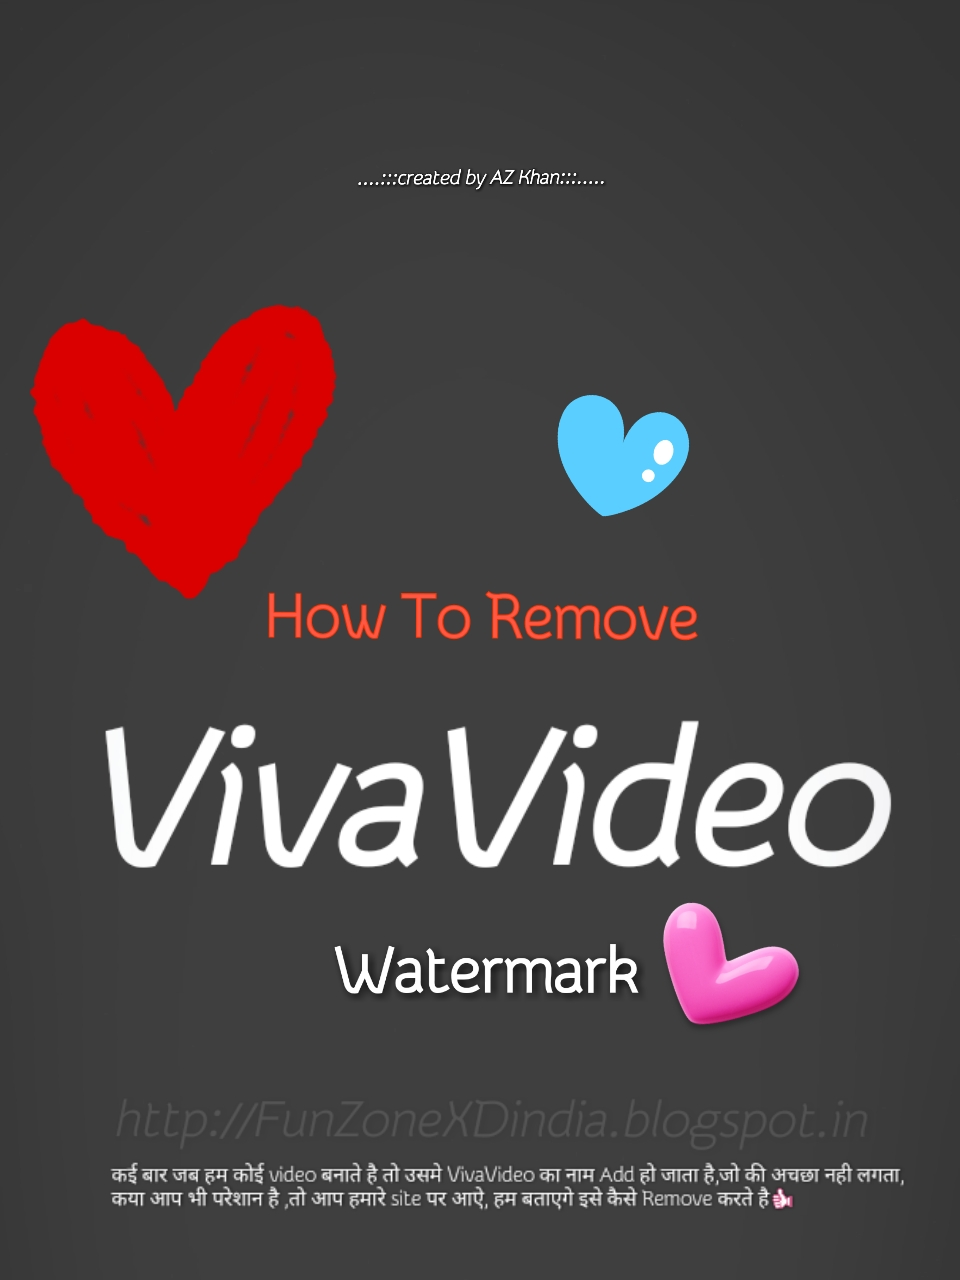 Viva Video Ka Watermark (Logo) Kese Hide Kare ((No Root)) 2017